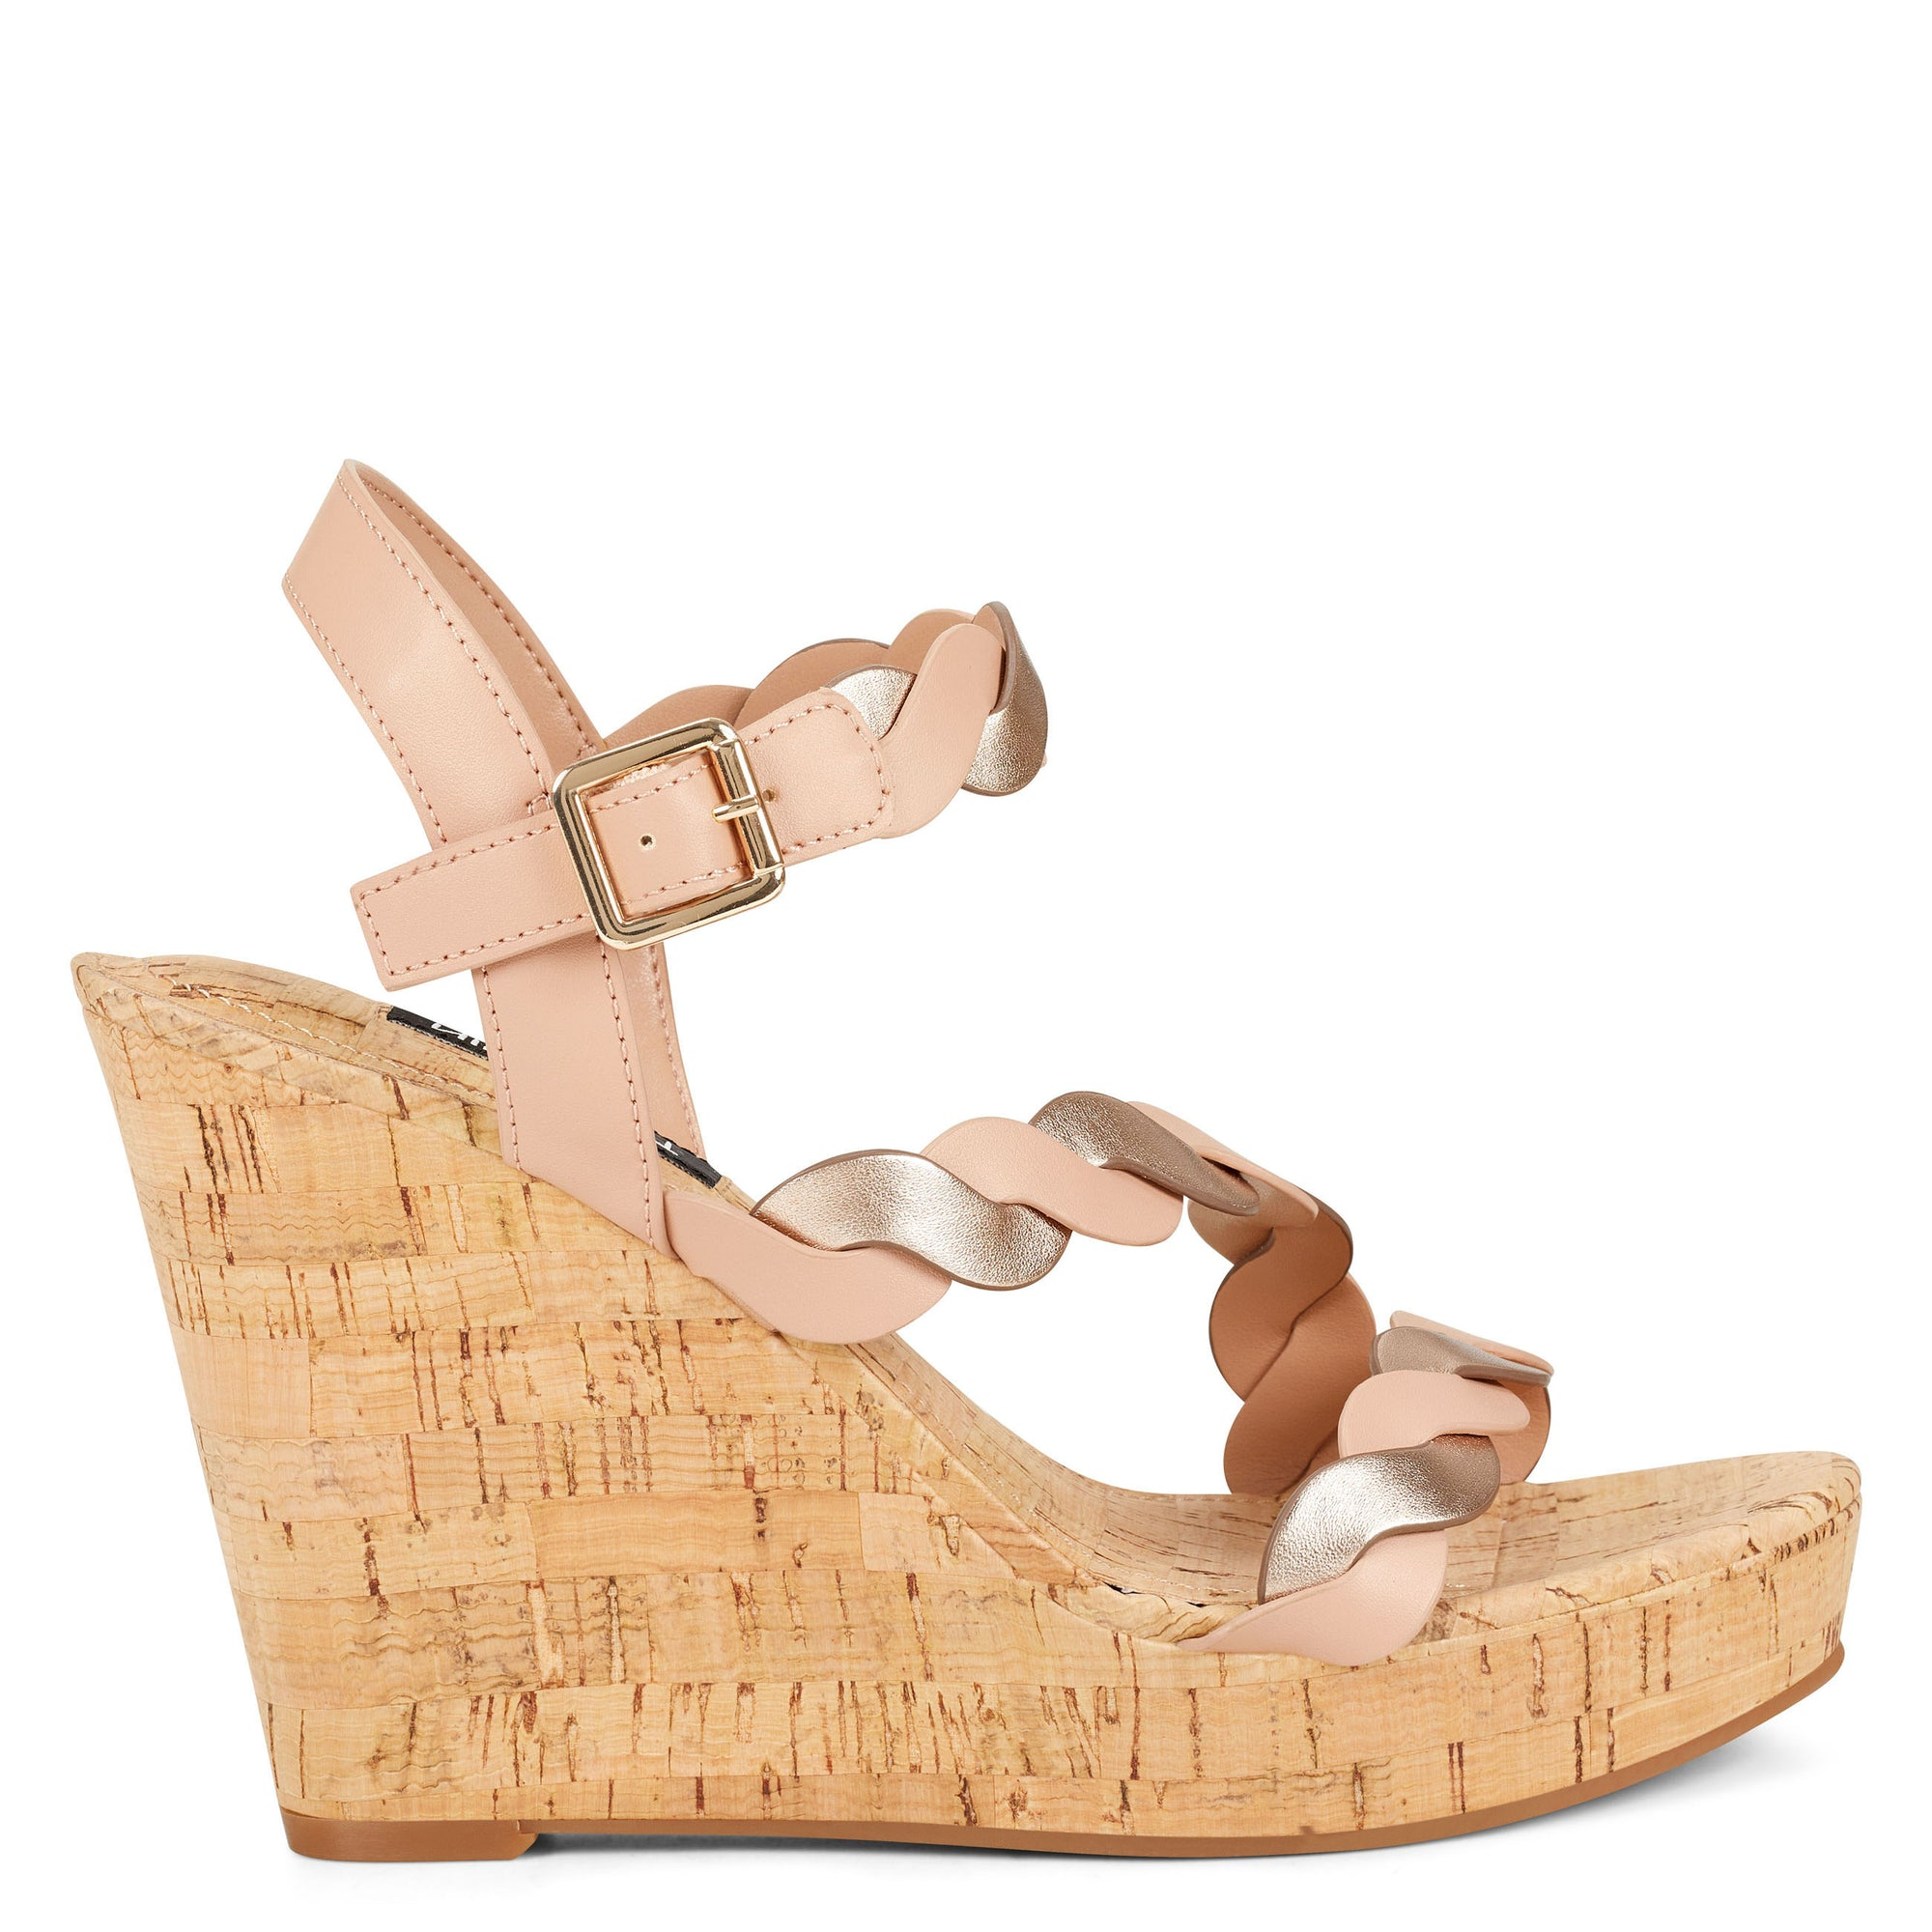 brette-wedge-sandals-in-pink-blush